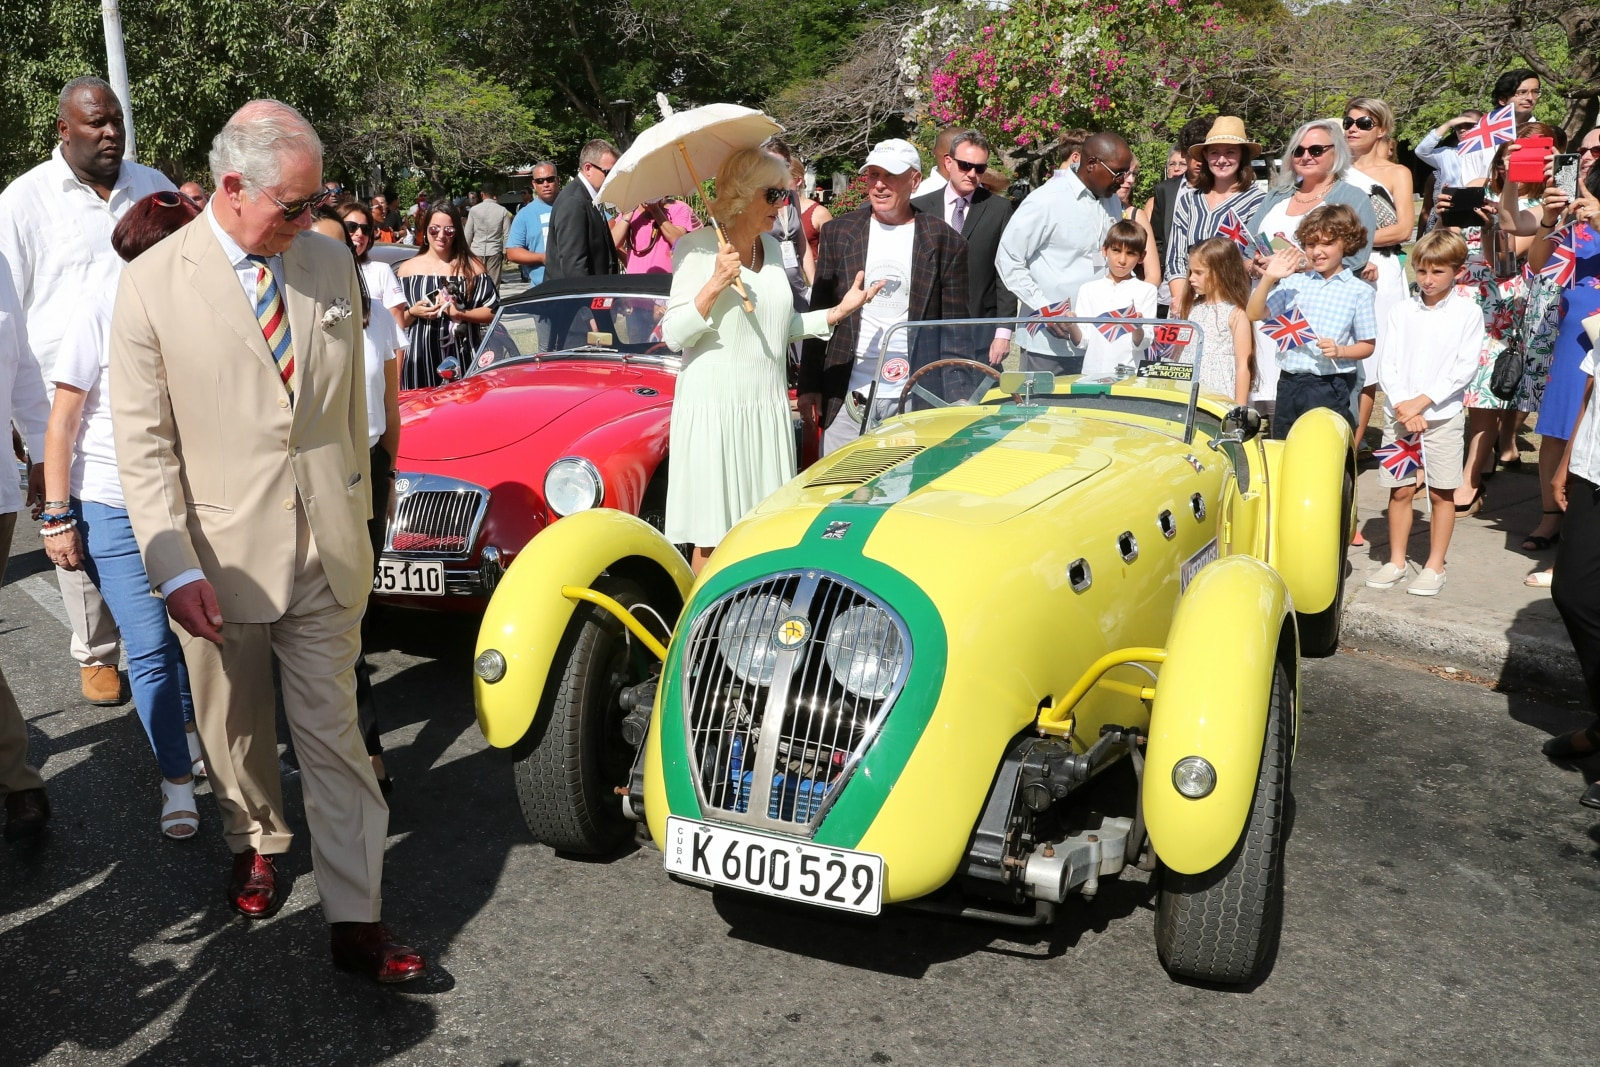 Britain's Prince Charles and Camilla, Duchess of Cornwall take a tour during a British Classic Car event in Havana, Cuba March 26, 2019. Chris Jackson/Pool via REUTERS